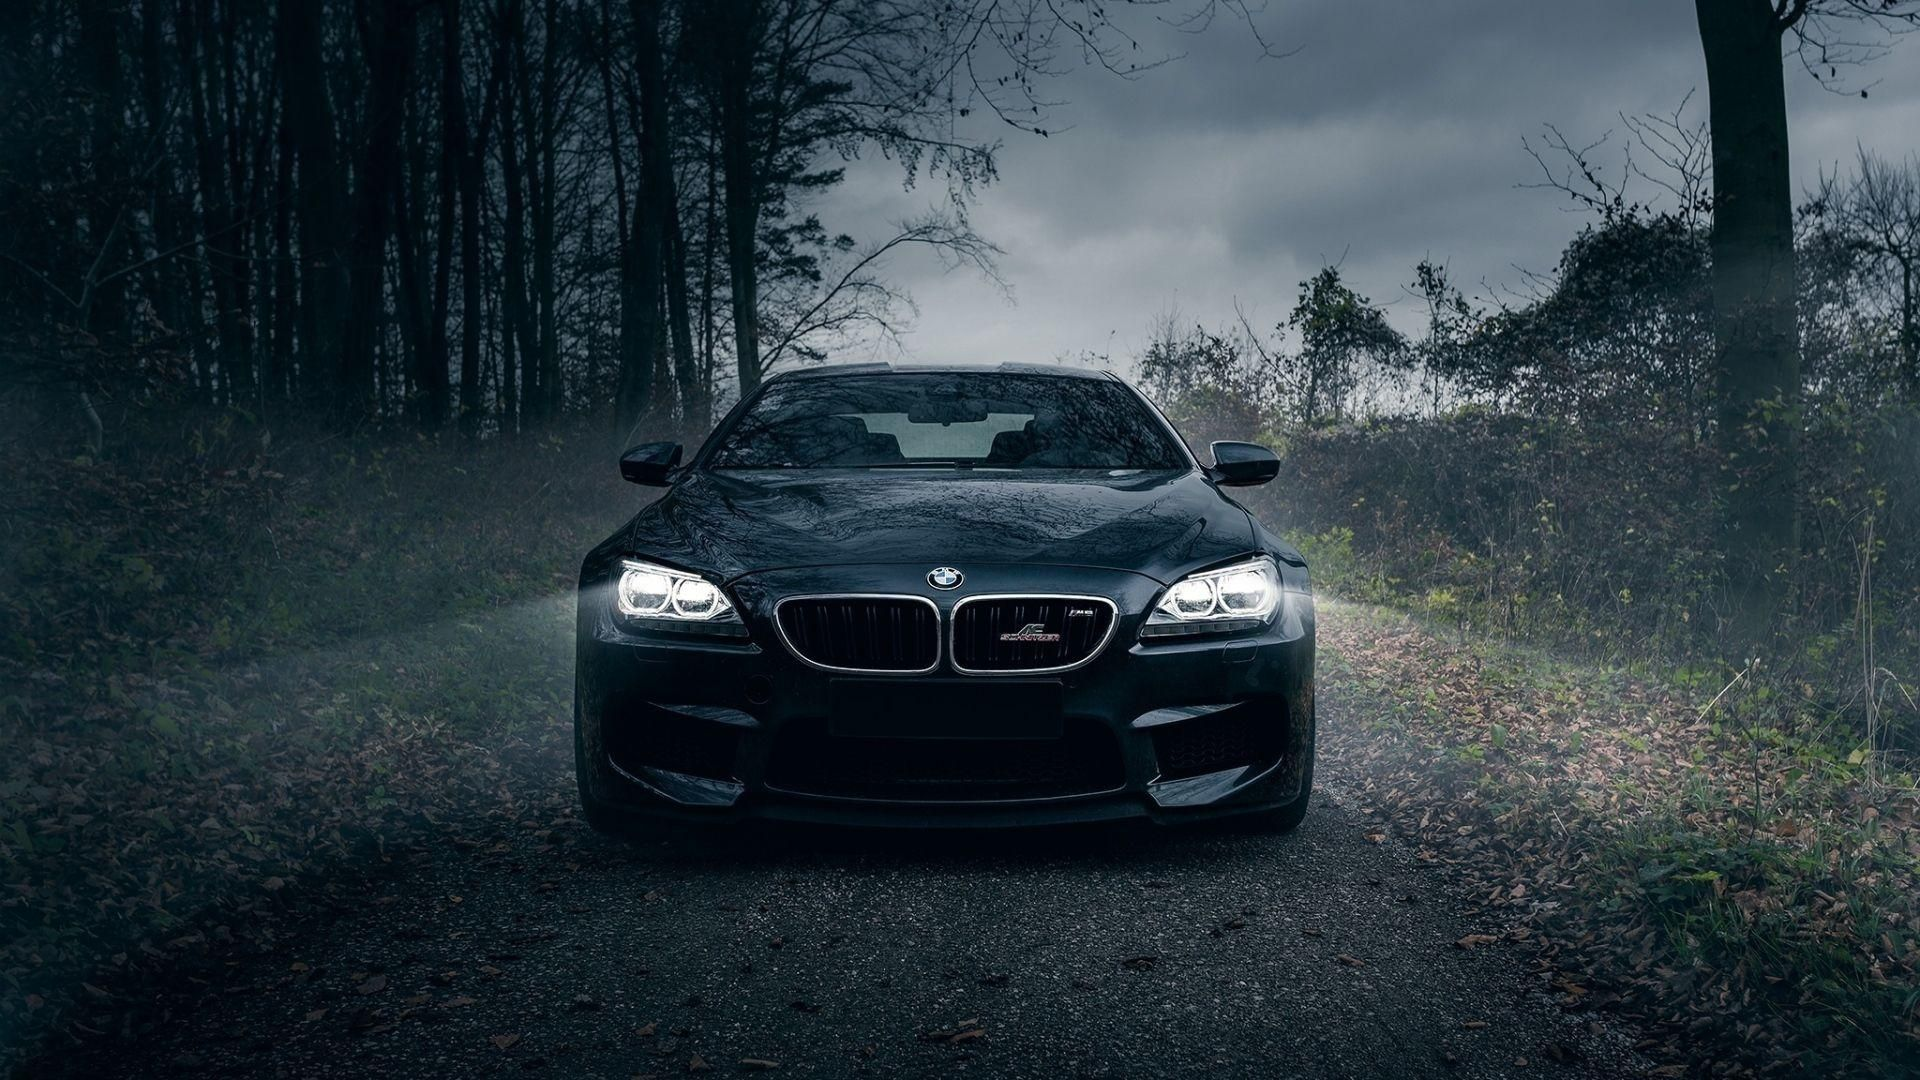 Pin On Bmw Cars Desktop Wallpapers Hd